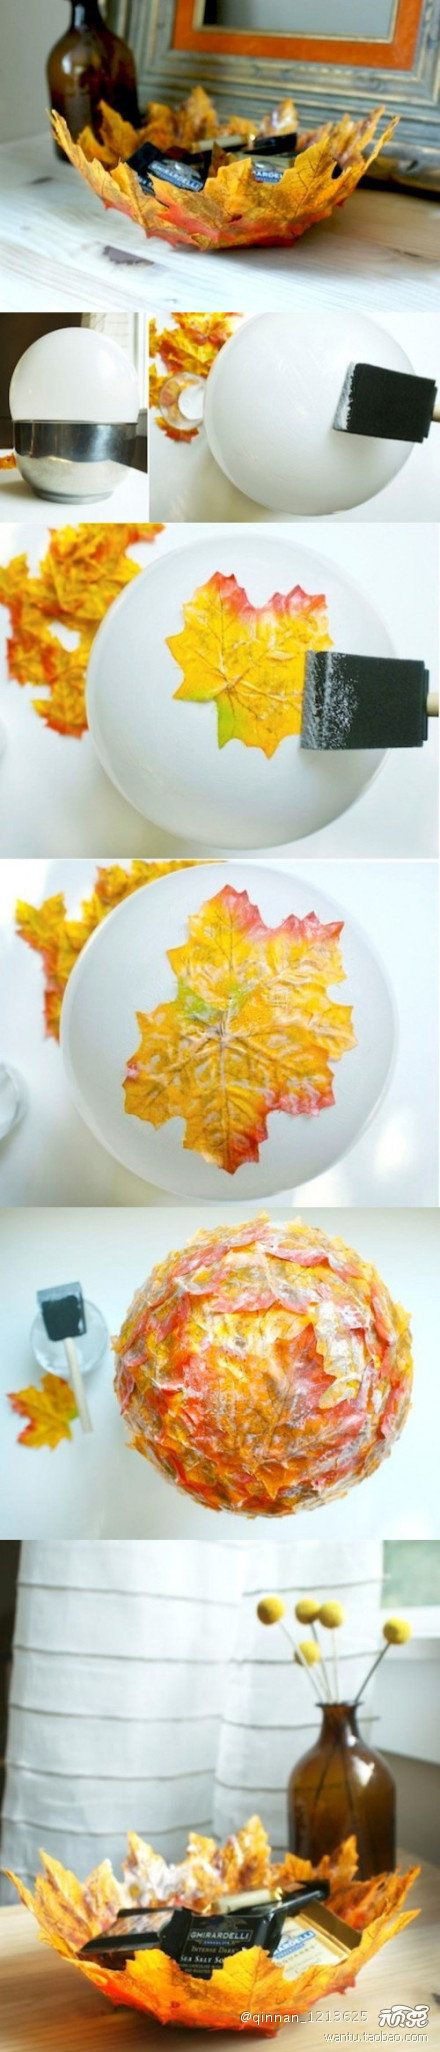 DIY Leaf Bowl - great project